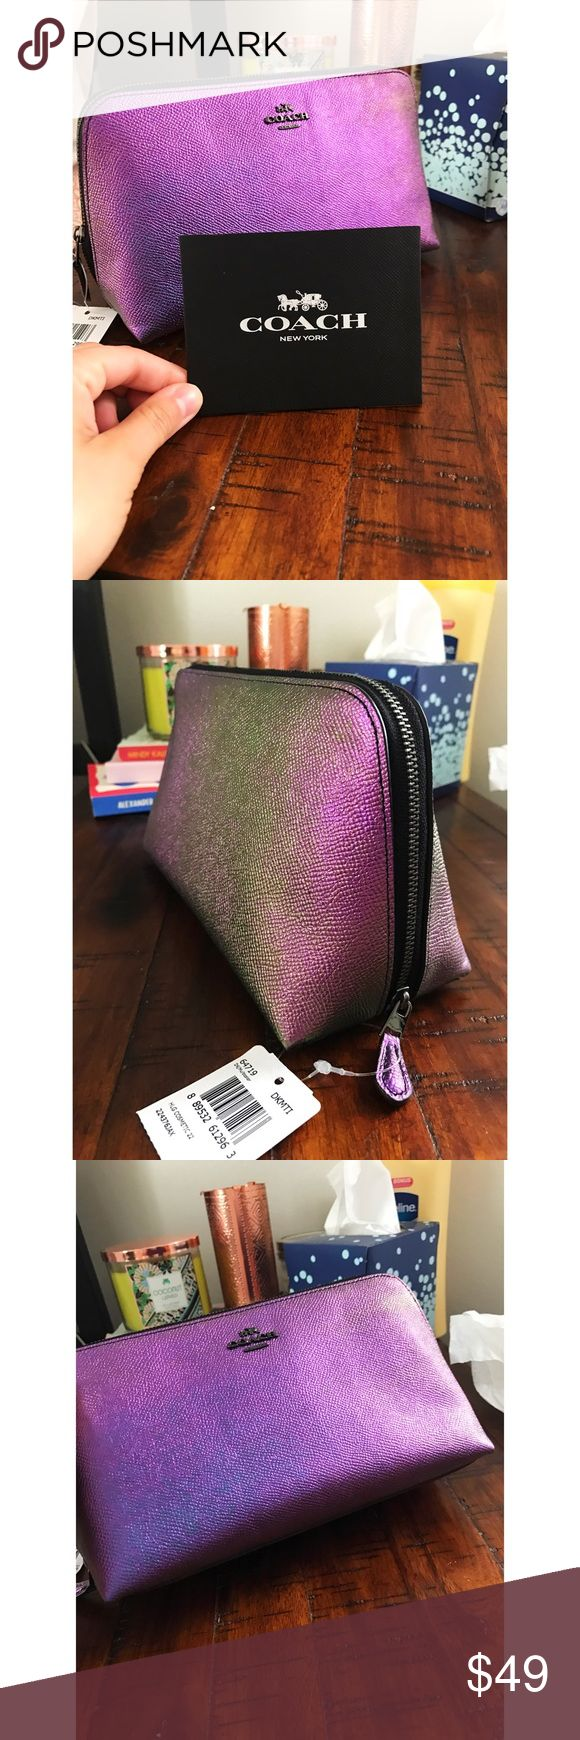 Coach Makeup Bag! Genuine leather, super cool purple/green holographic color! Metal zipper, large space inside perfect for makeup or other hygiene products! Brand new, with tags. I can send it with the coach shopping bag it came in too! Inside there's a side pocket as well to keep things organized! Willing to negotiate price ☺ this bag is super cute so don't miss out! Coach Bags Cosmetic Bags & Cases